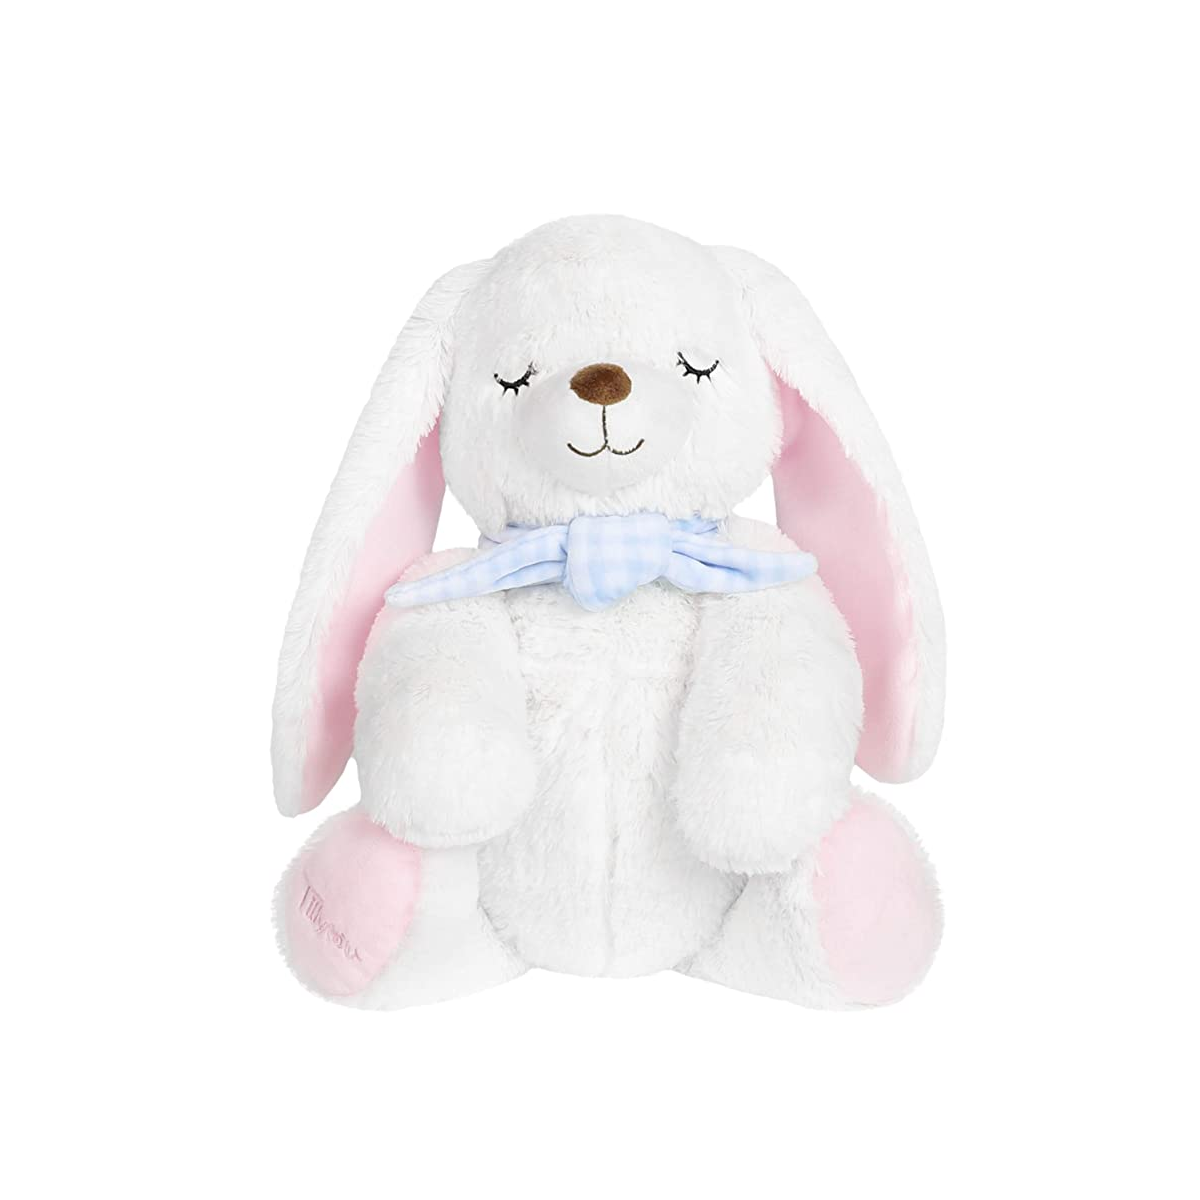 9020store Soft Plush Stuffed Rabbit, Bunny Stuffed Animals for Girls Toddlers Kids (White, 10 inches Sitting Height)